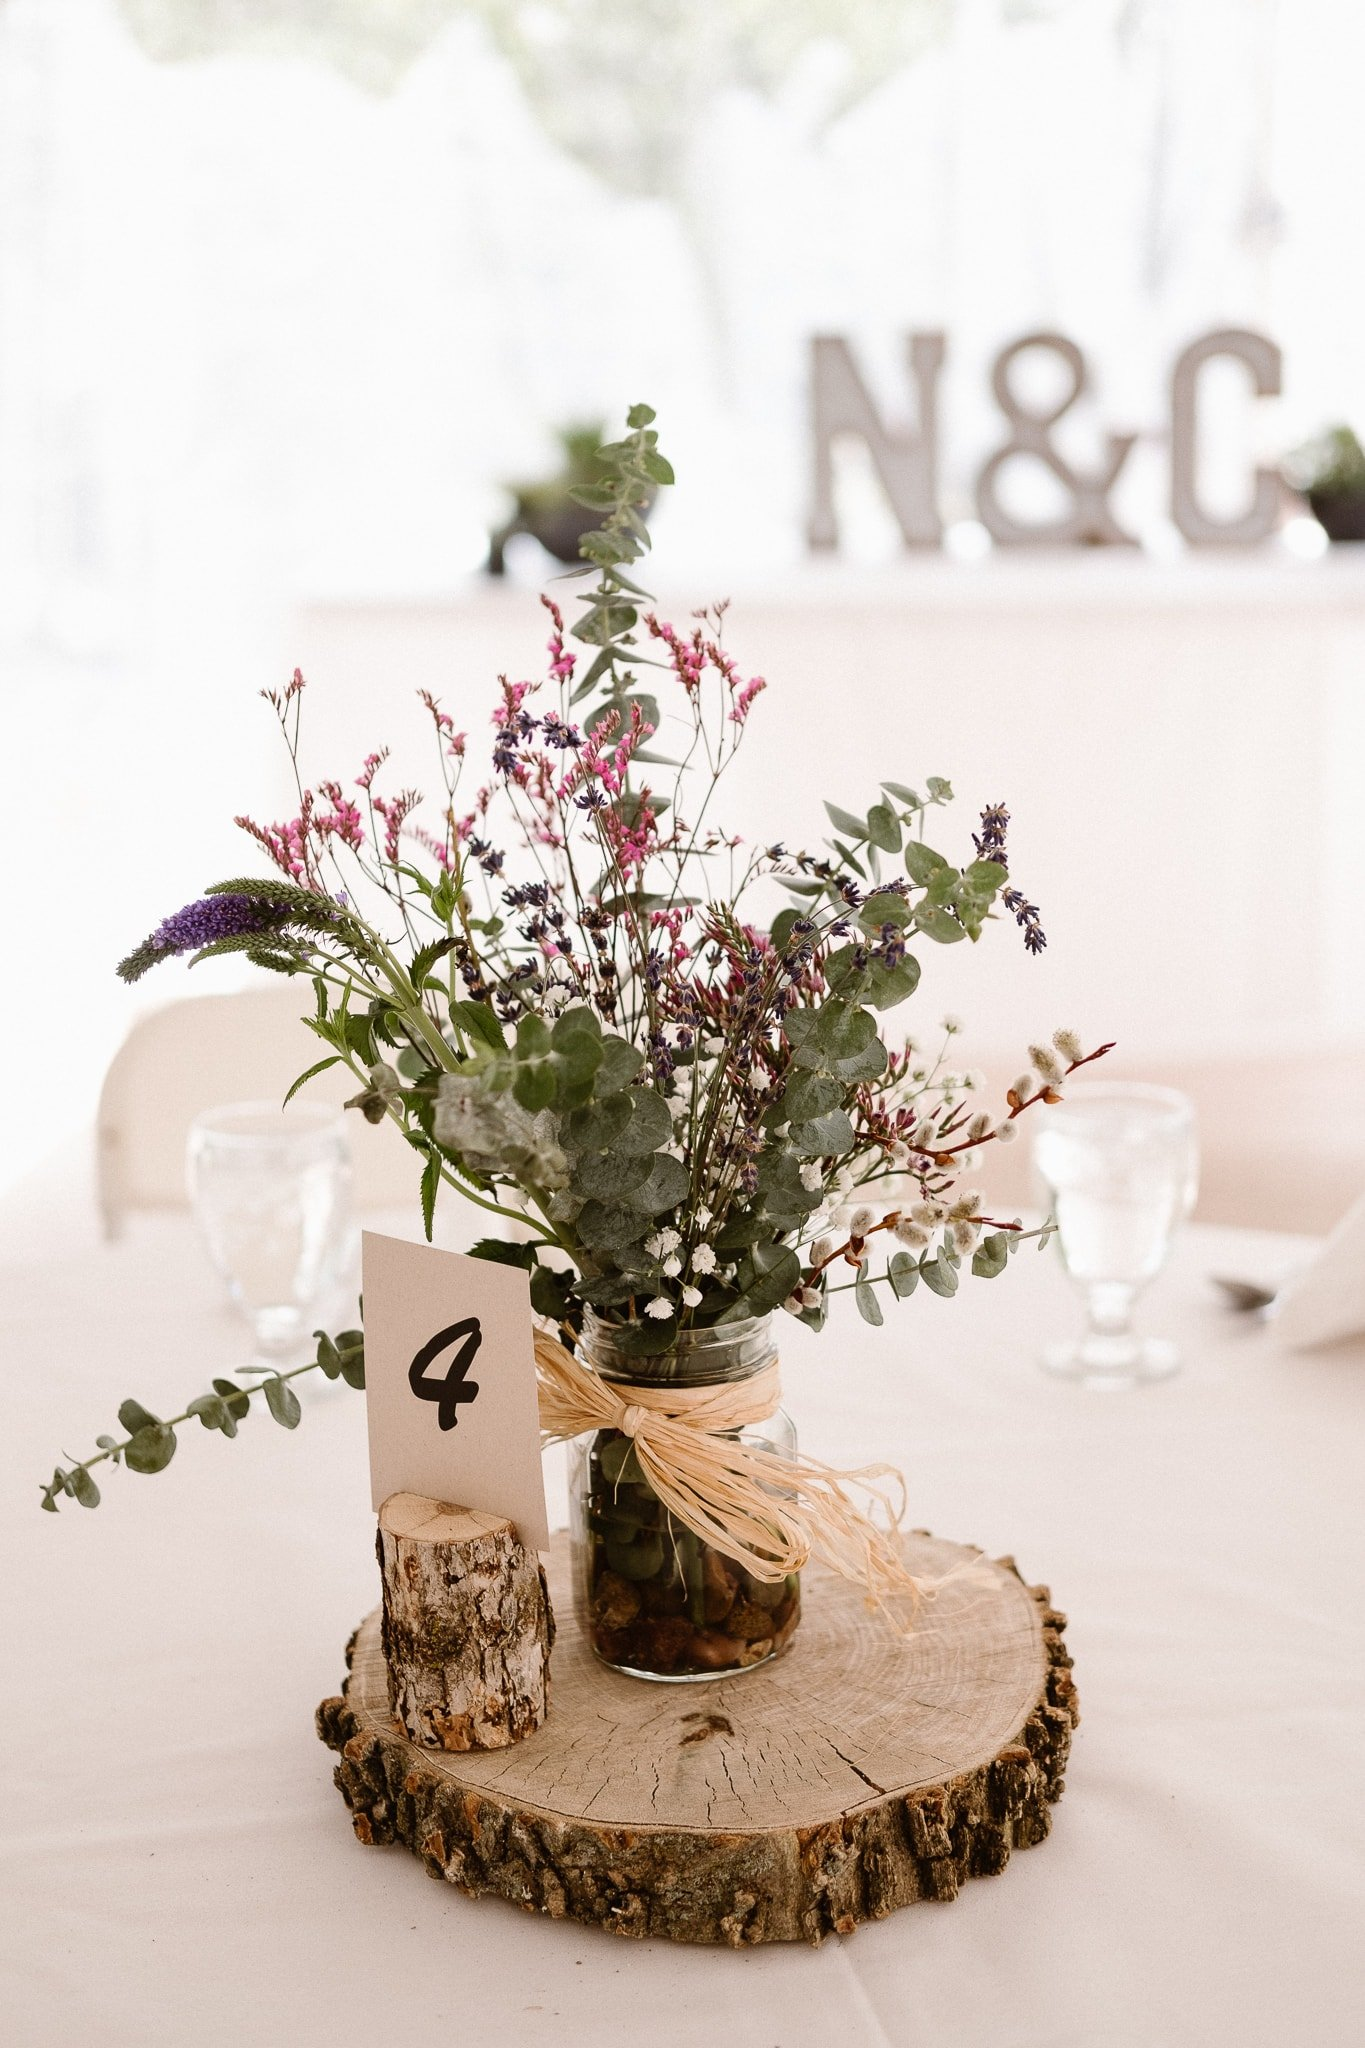 Redstone Inn wedding photographer, Carbondale wedding photographer, Colorado intimate wedding photographer, wedding reception decor with wildflowers